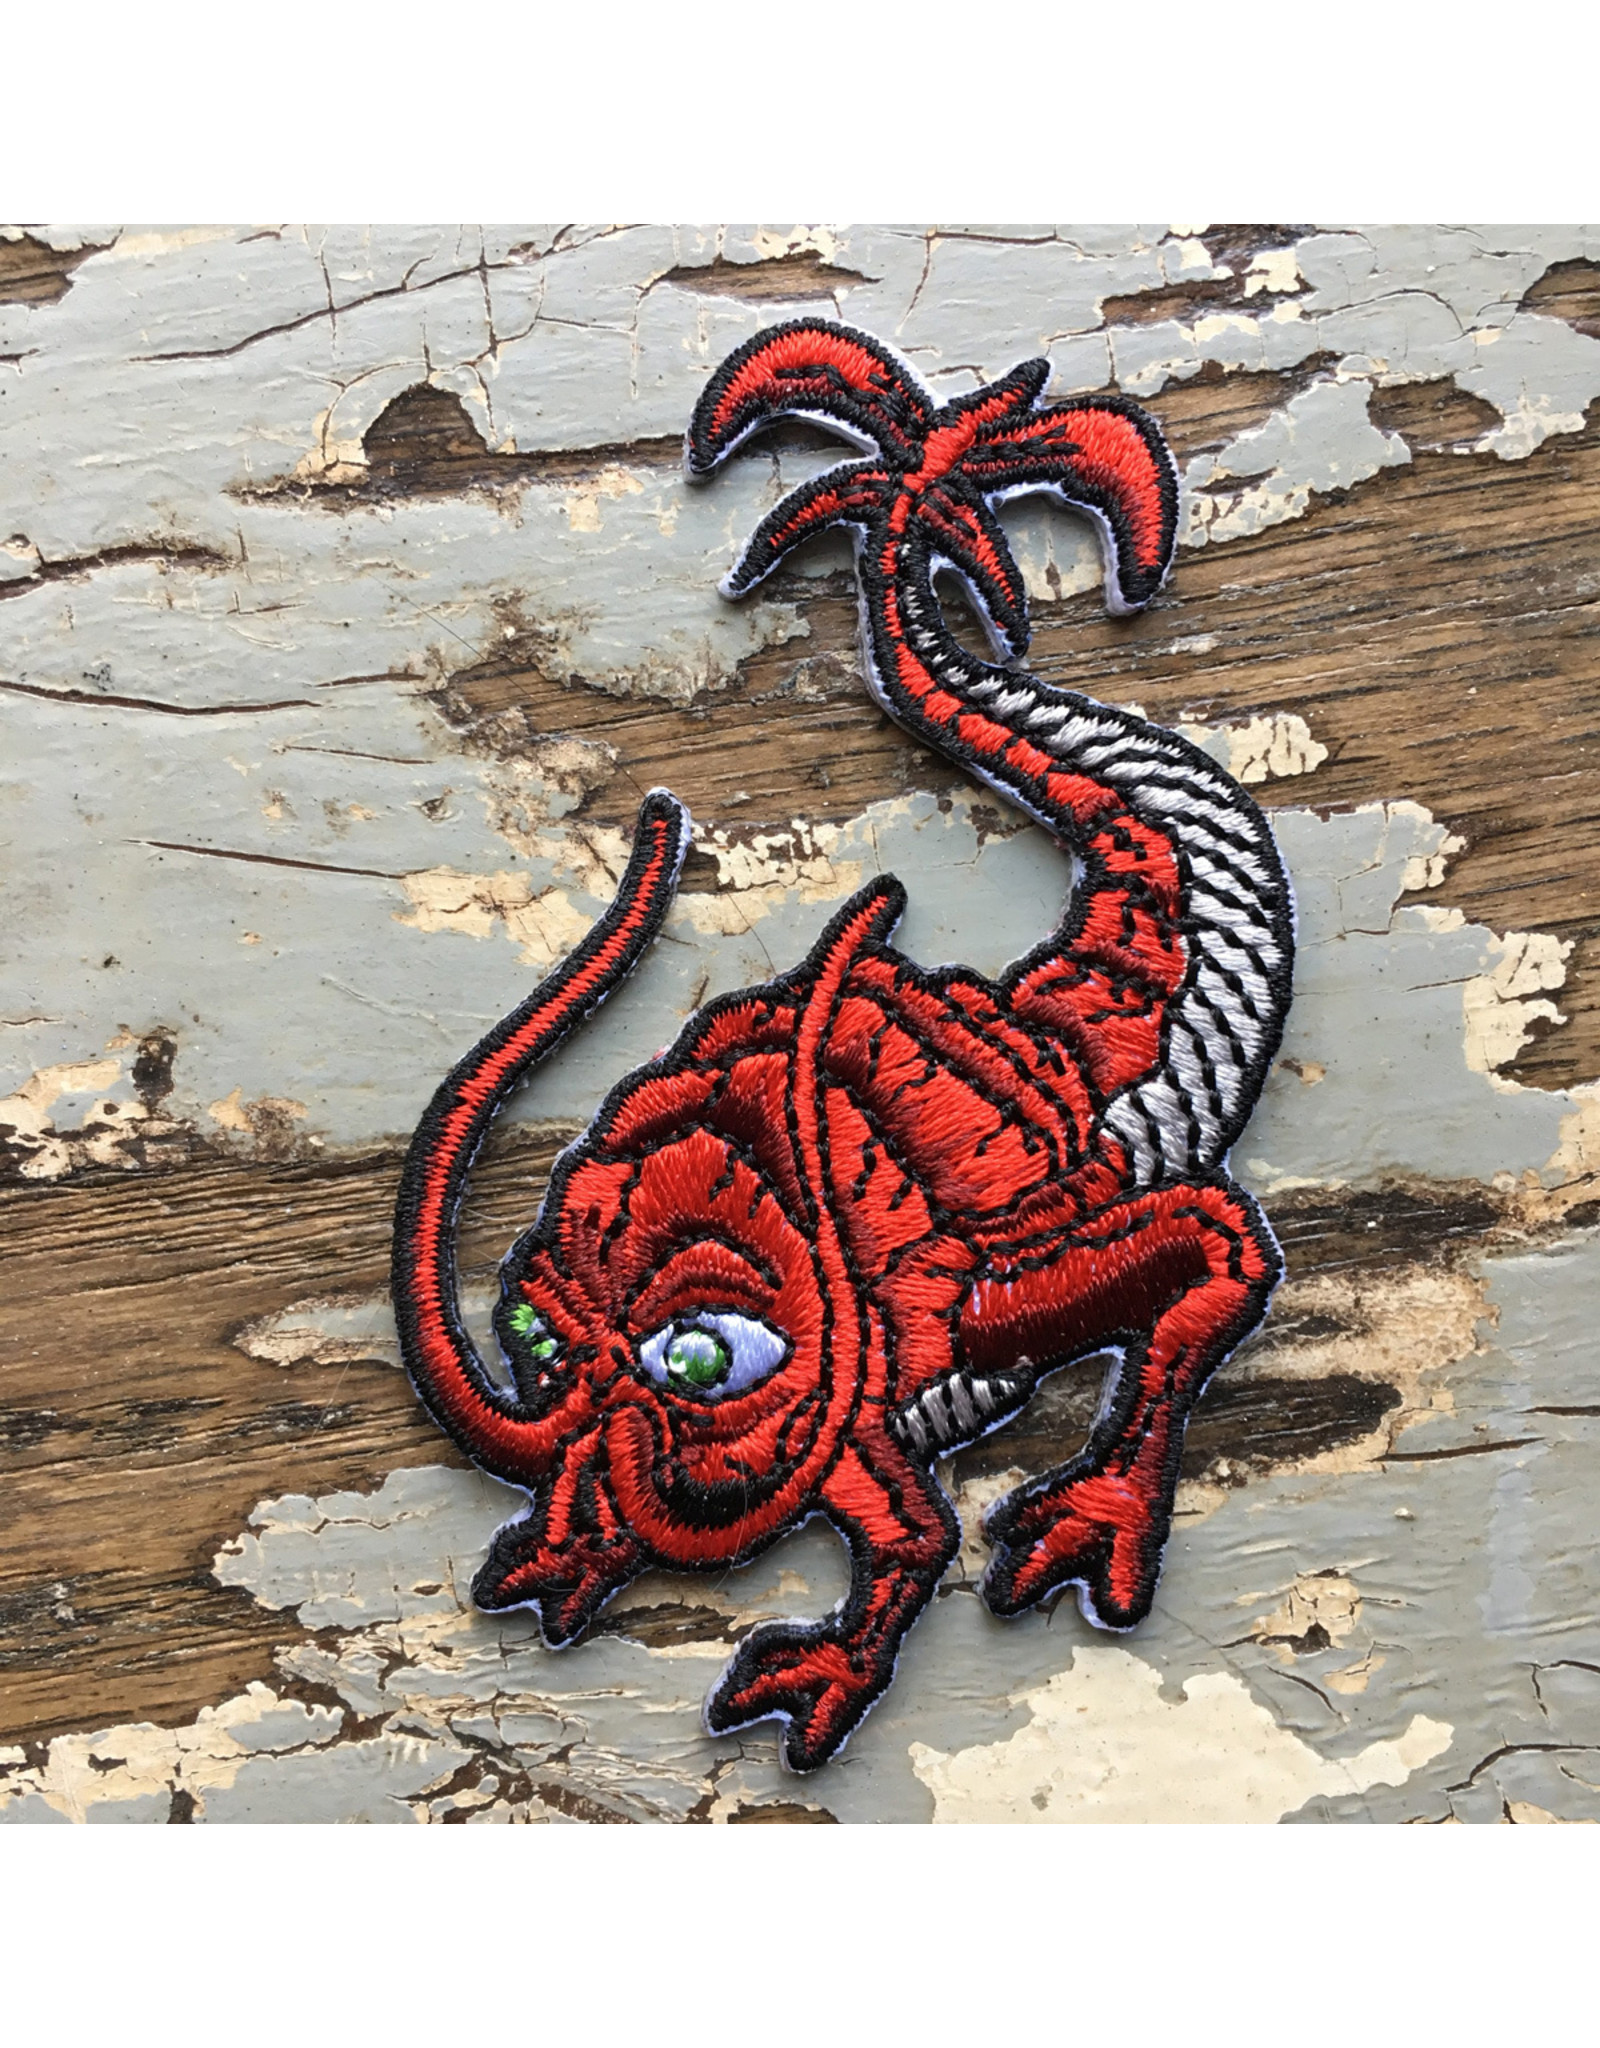 Creature Curation Rusty – Patch